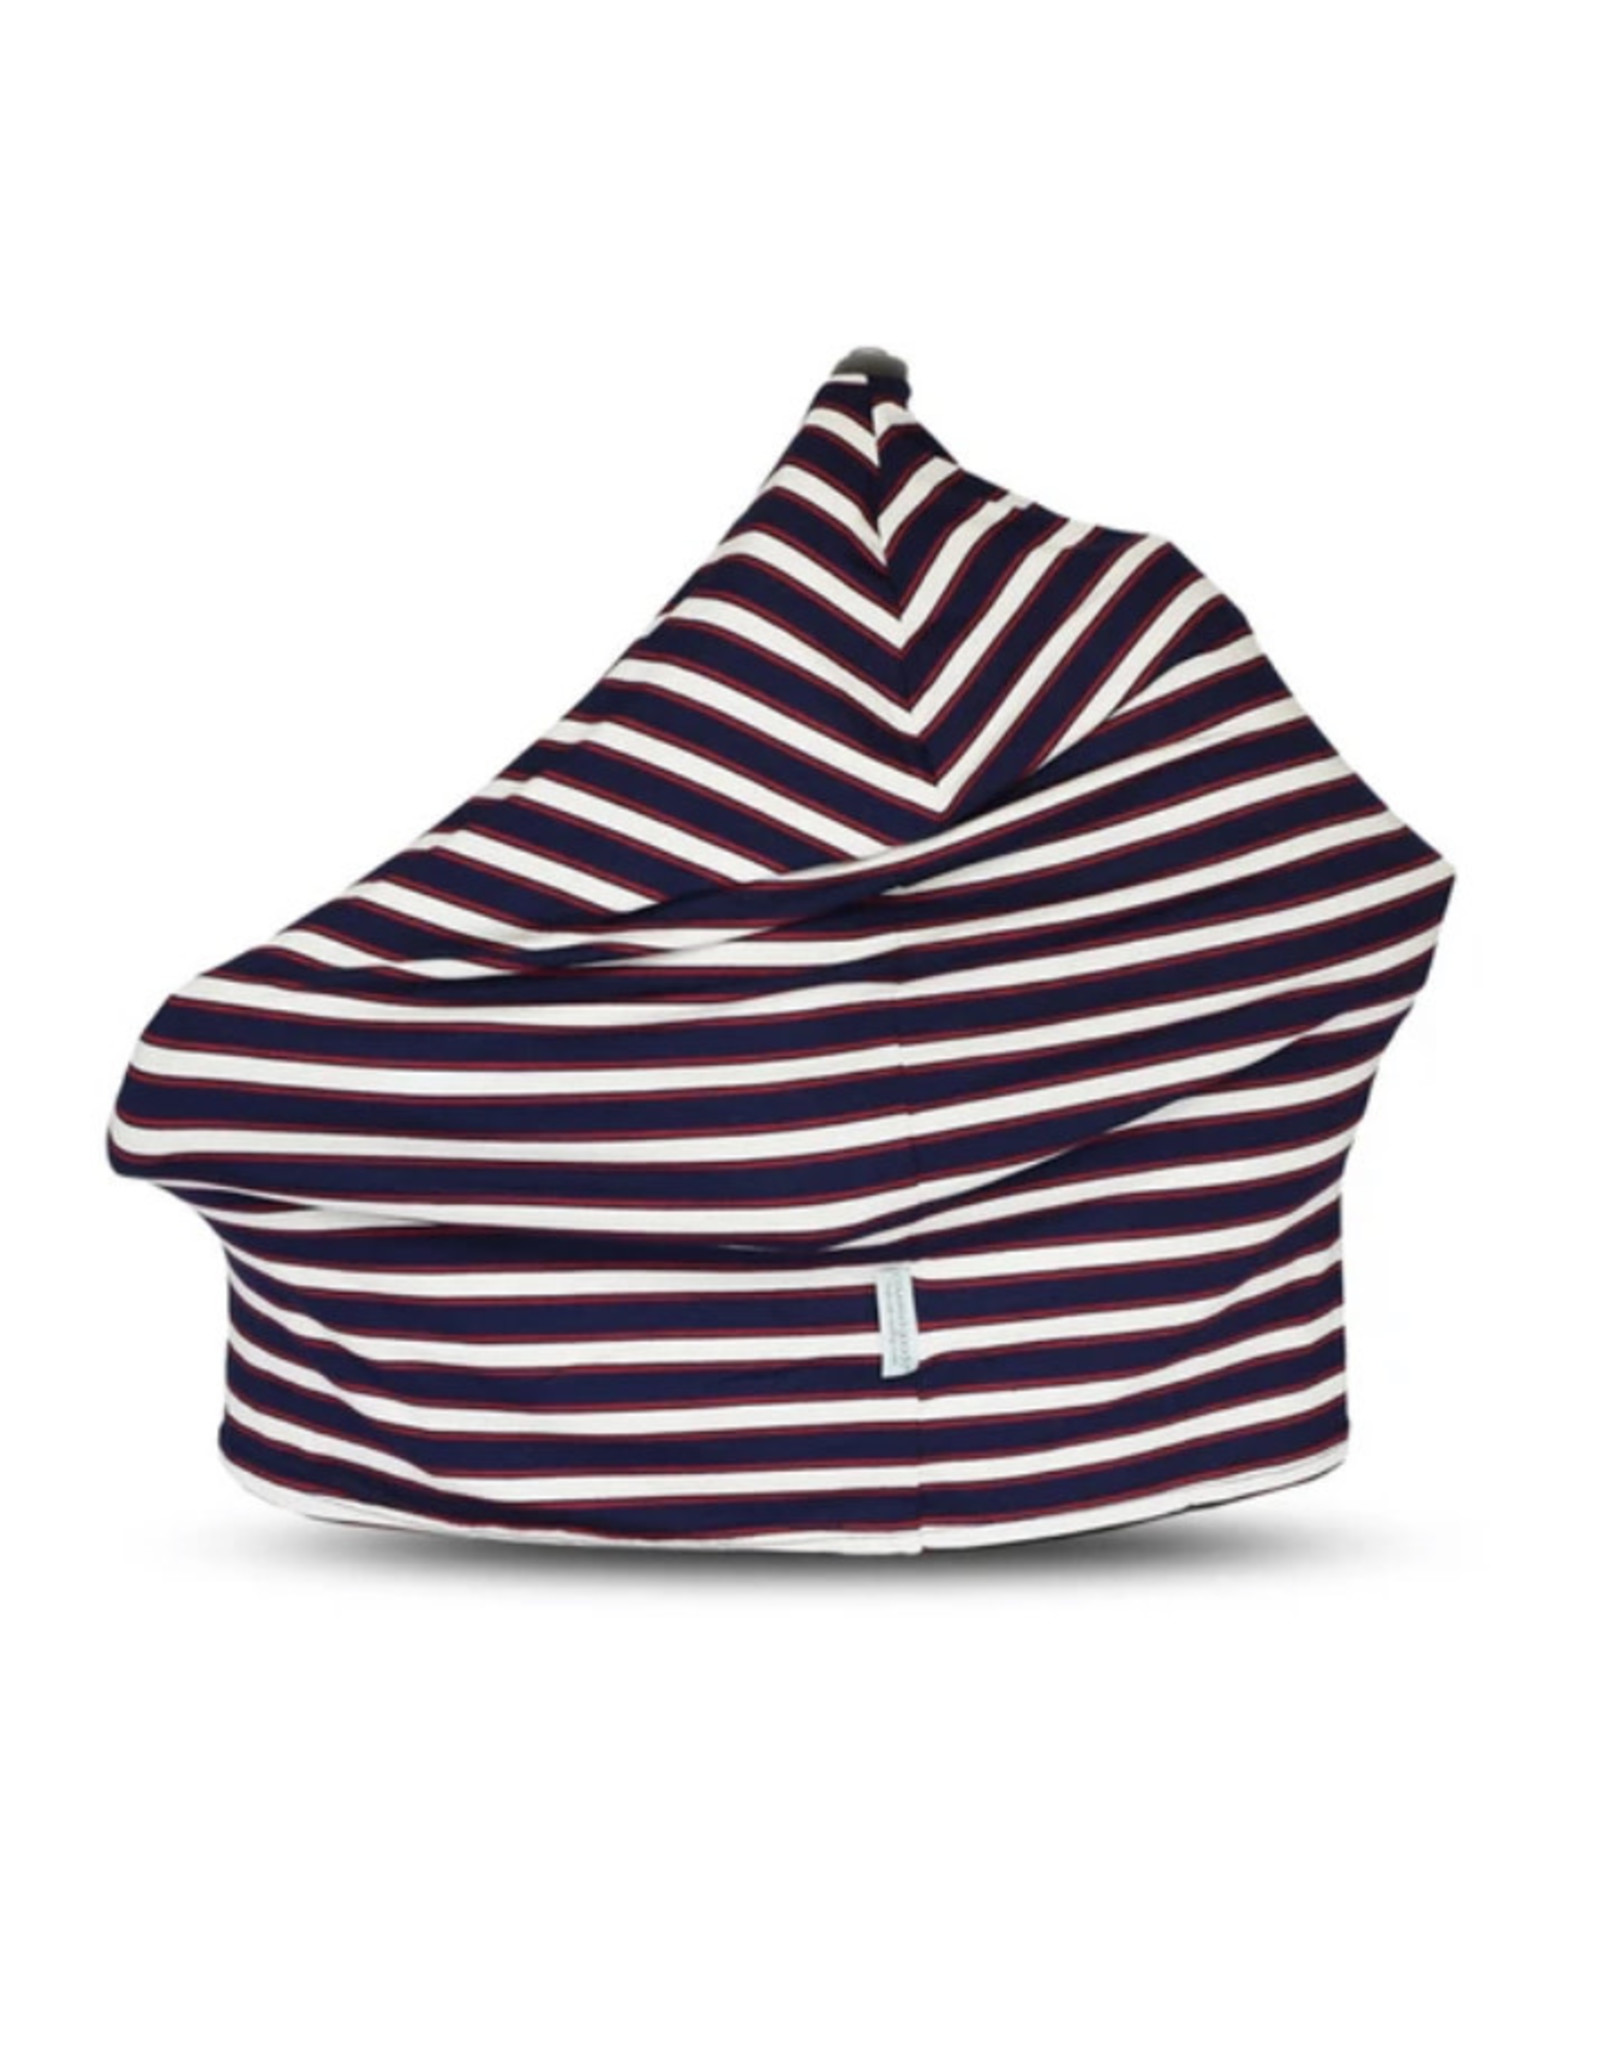 Covered Goods Covered Goods- Nautical Stripe